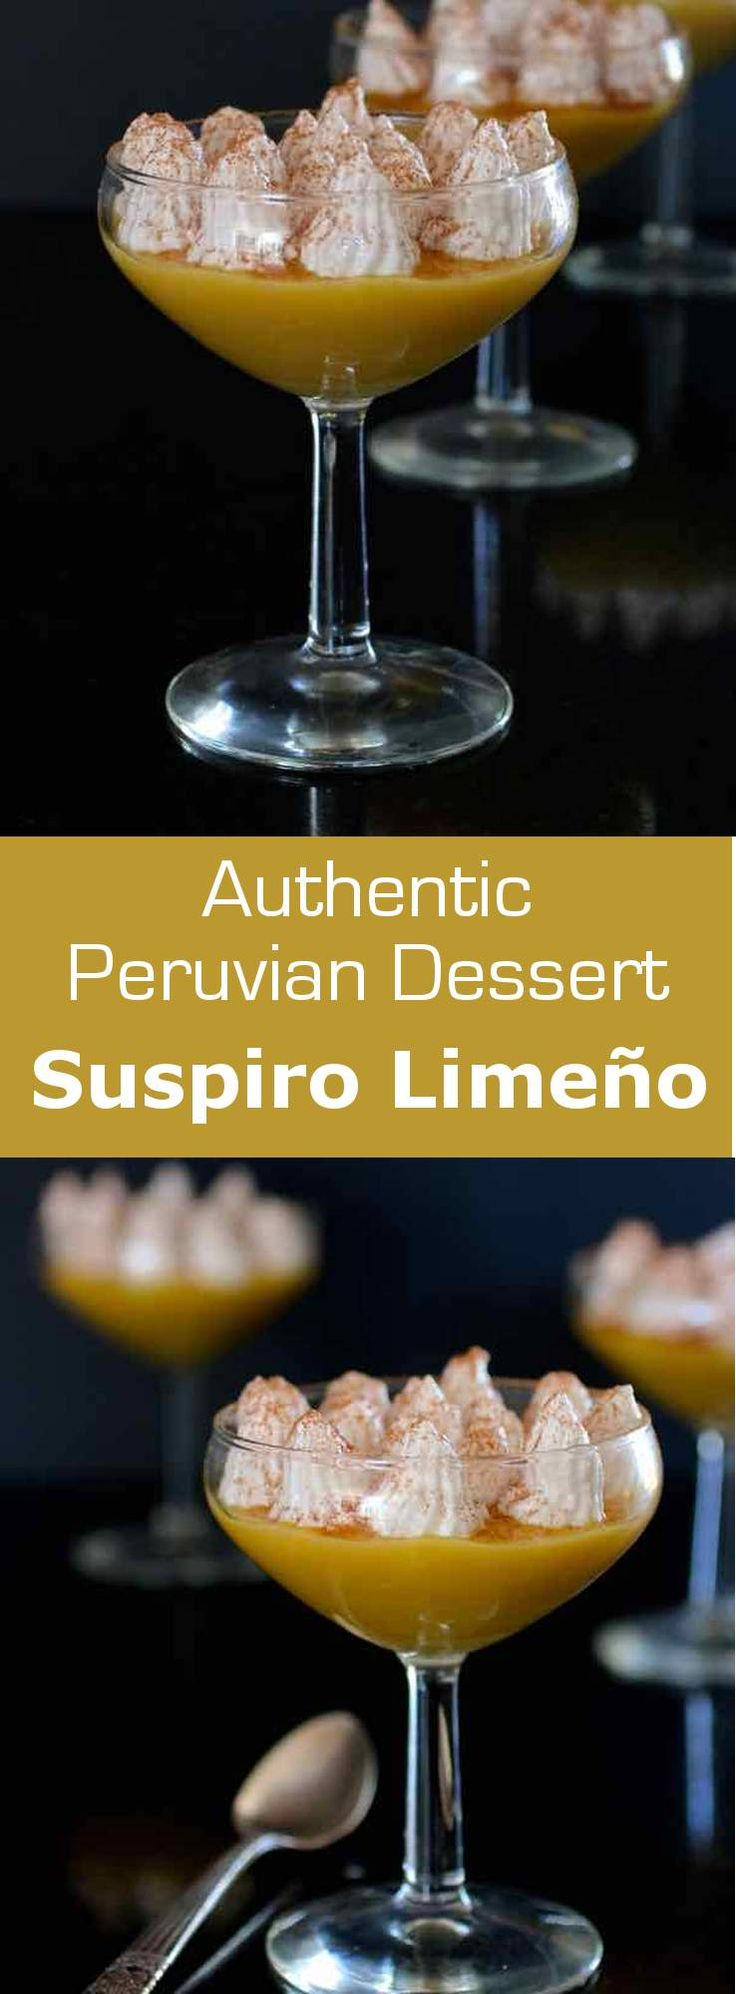 Suspiro limeño is a traditional Peruvian dessert combining the silkiness of a…